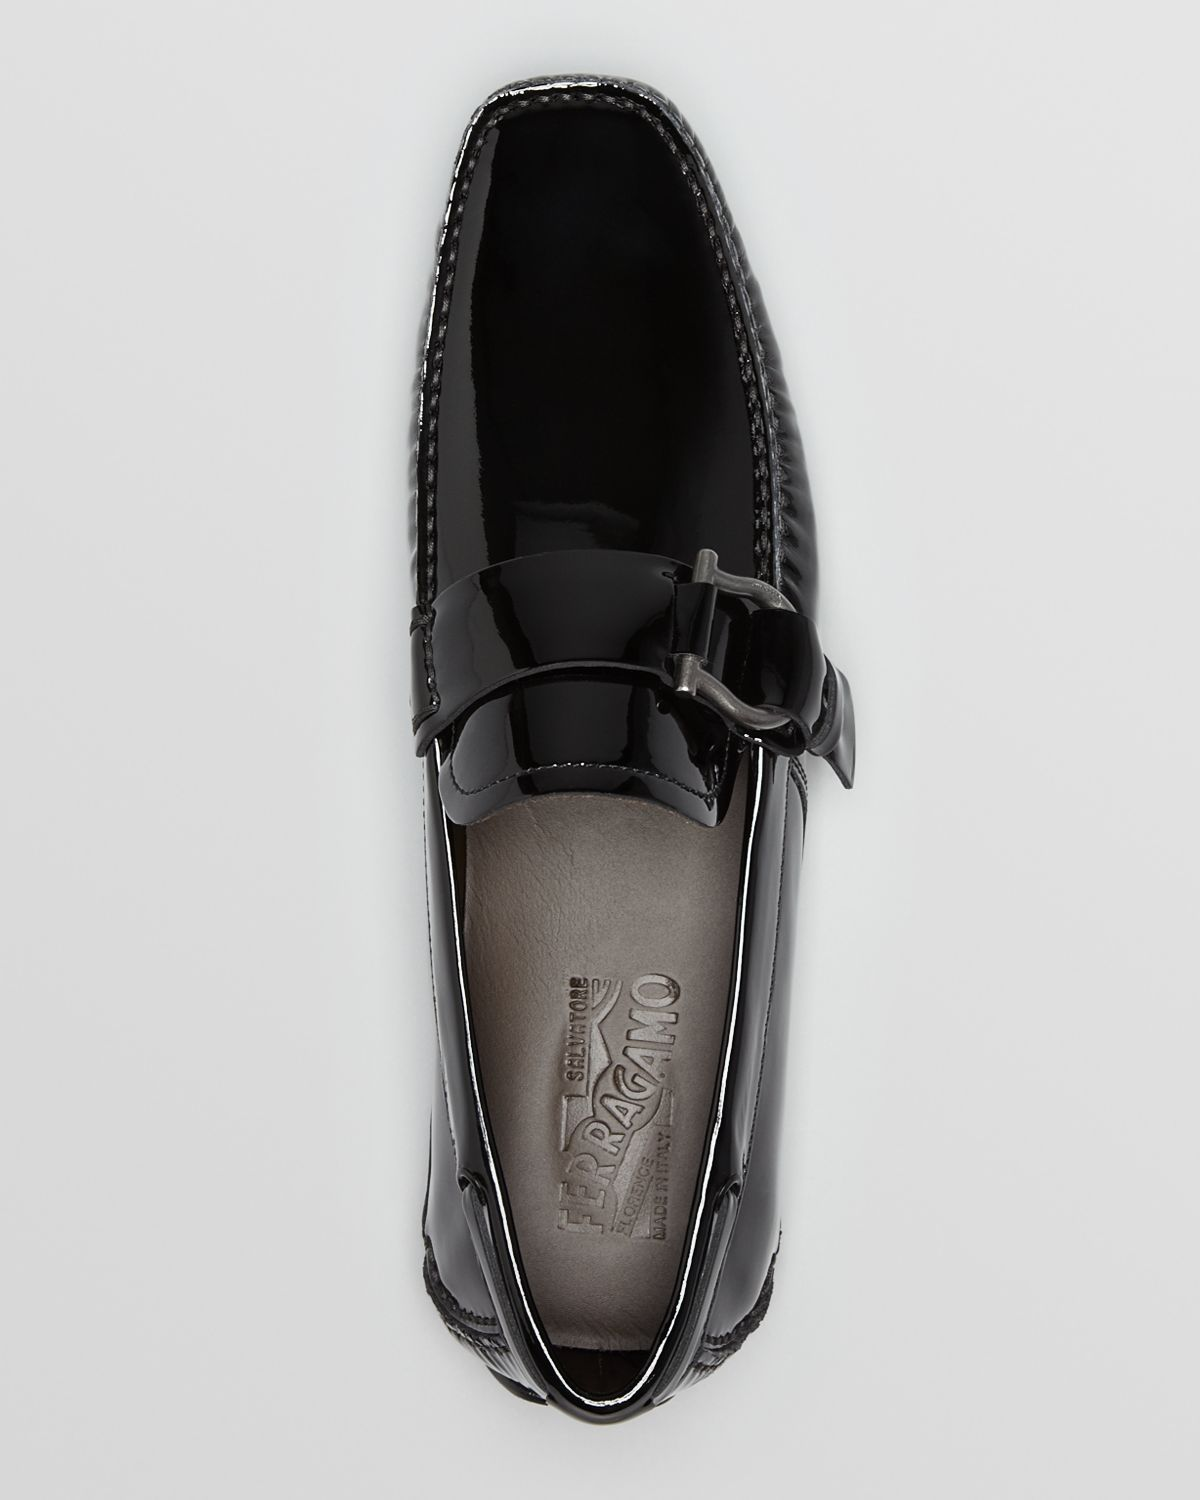 Ferragamo Cabo Patent Leather Driving Loafers In Black For